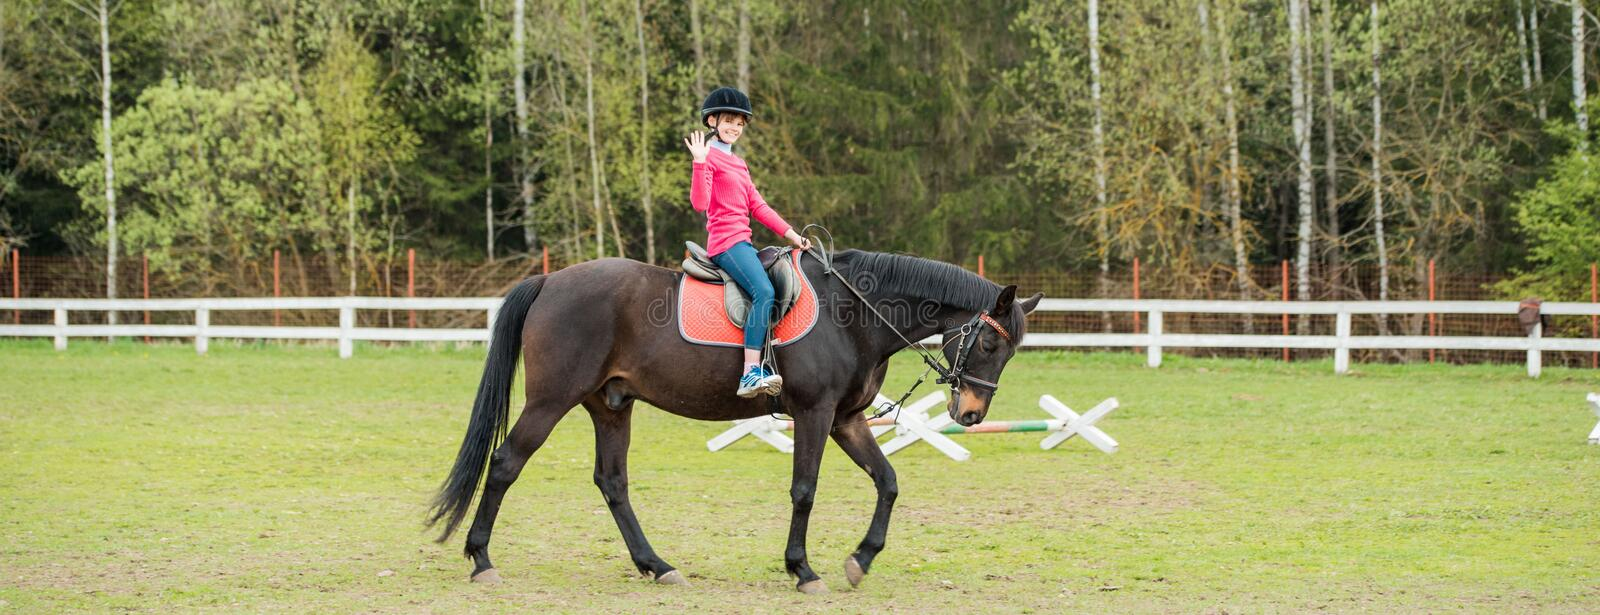 Young sportswoman riding horse in equestrian show jumps competition. Teenage girl ride a horse stock photography